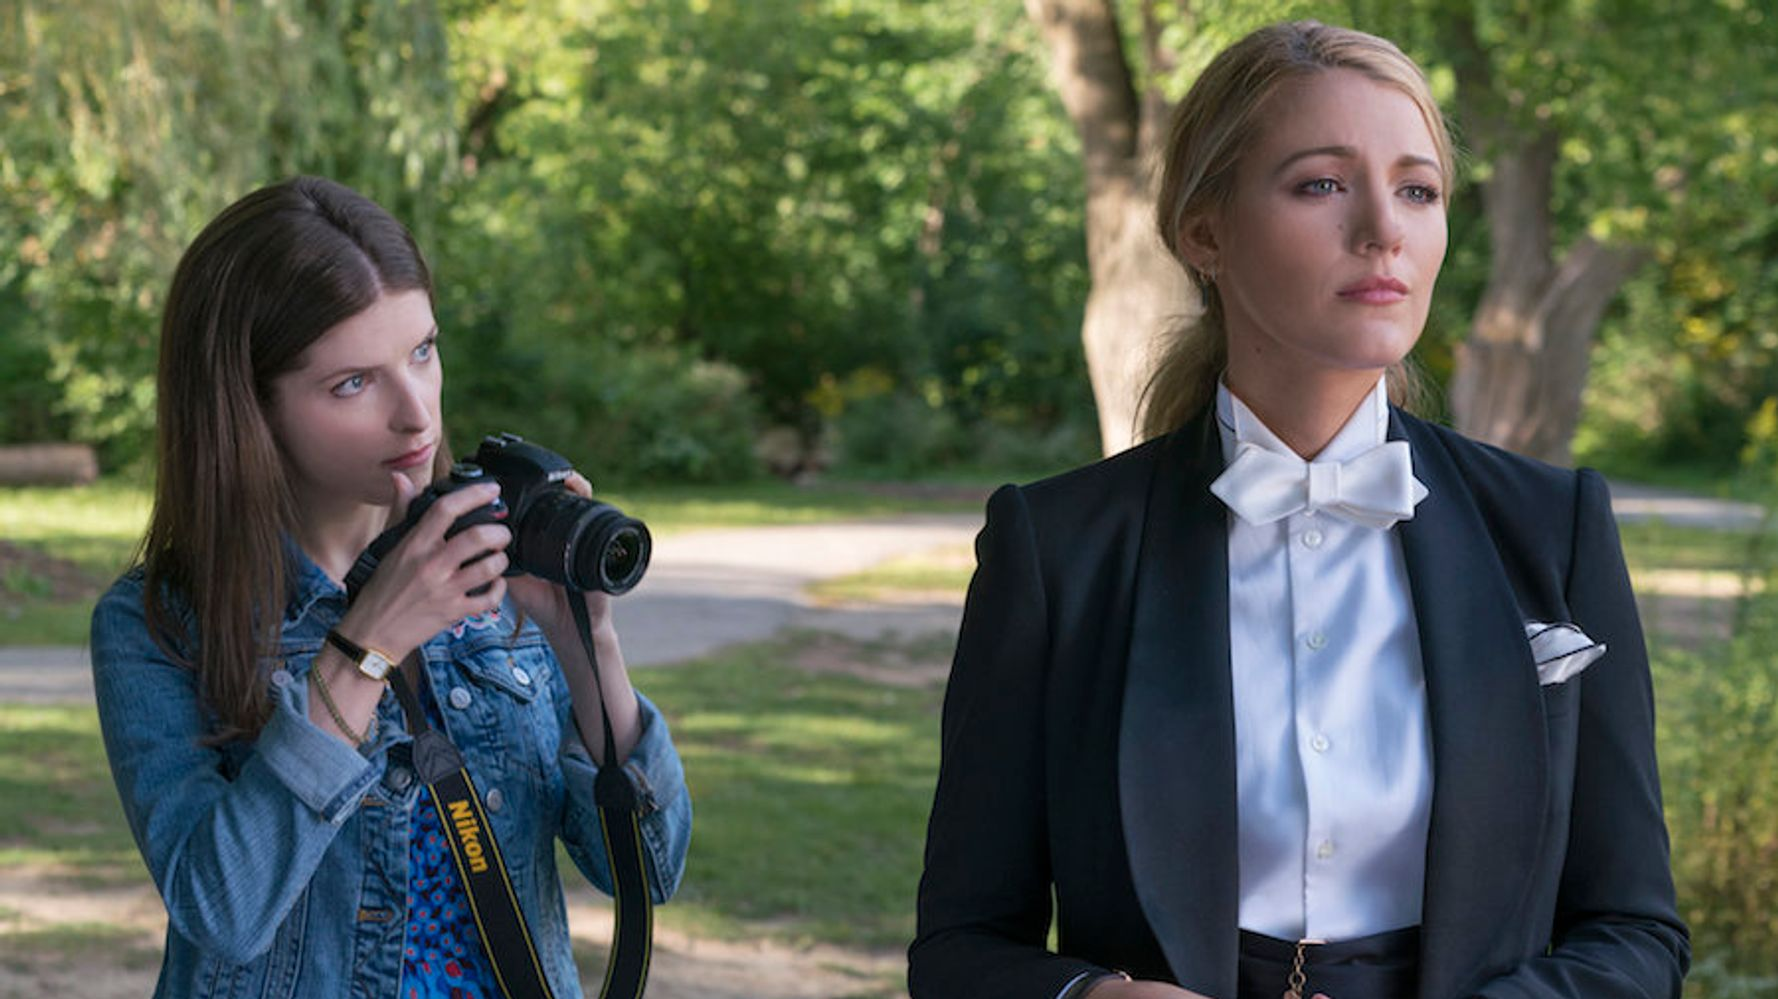 Breaking Down The Plot Twists That Make 'A Simple Favor' So Bananas